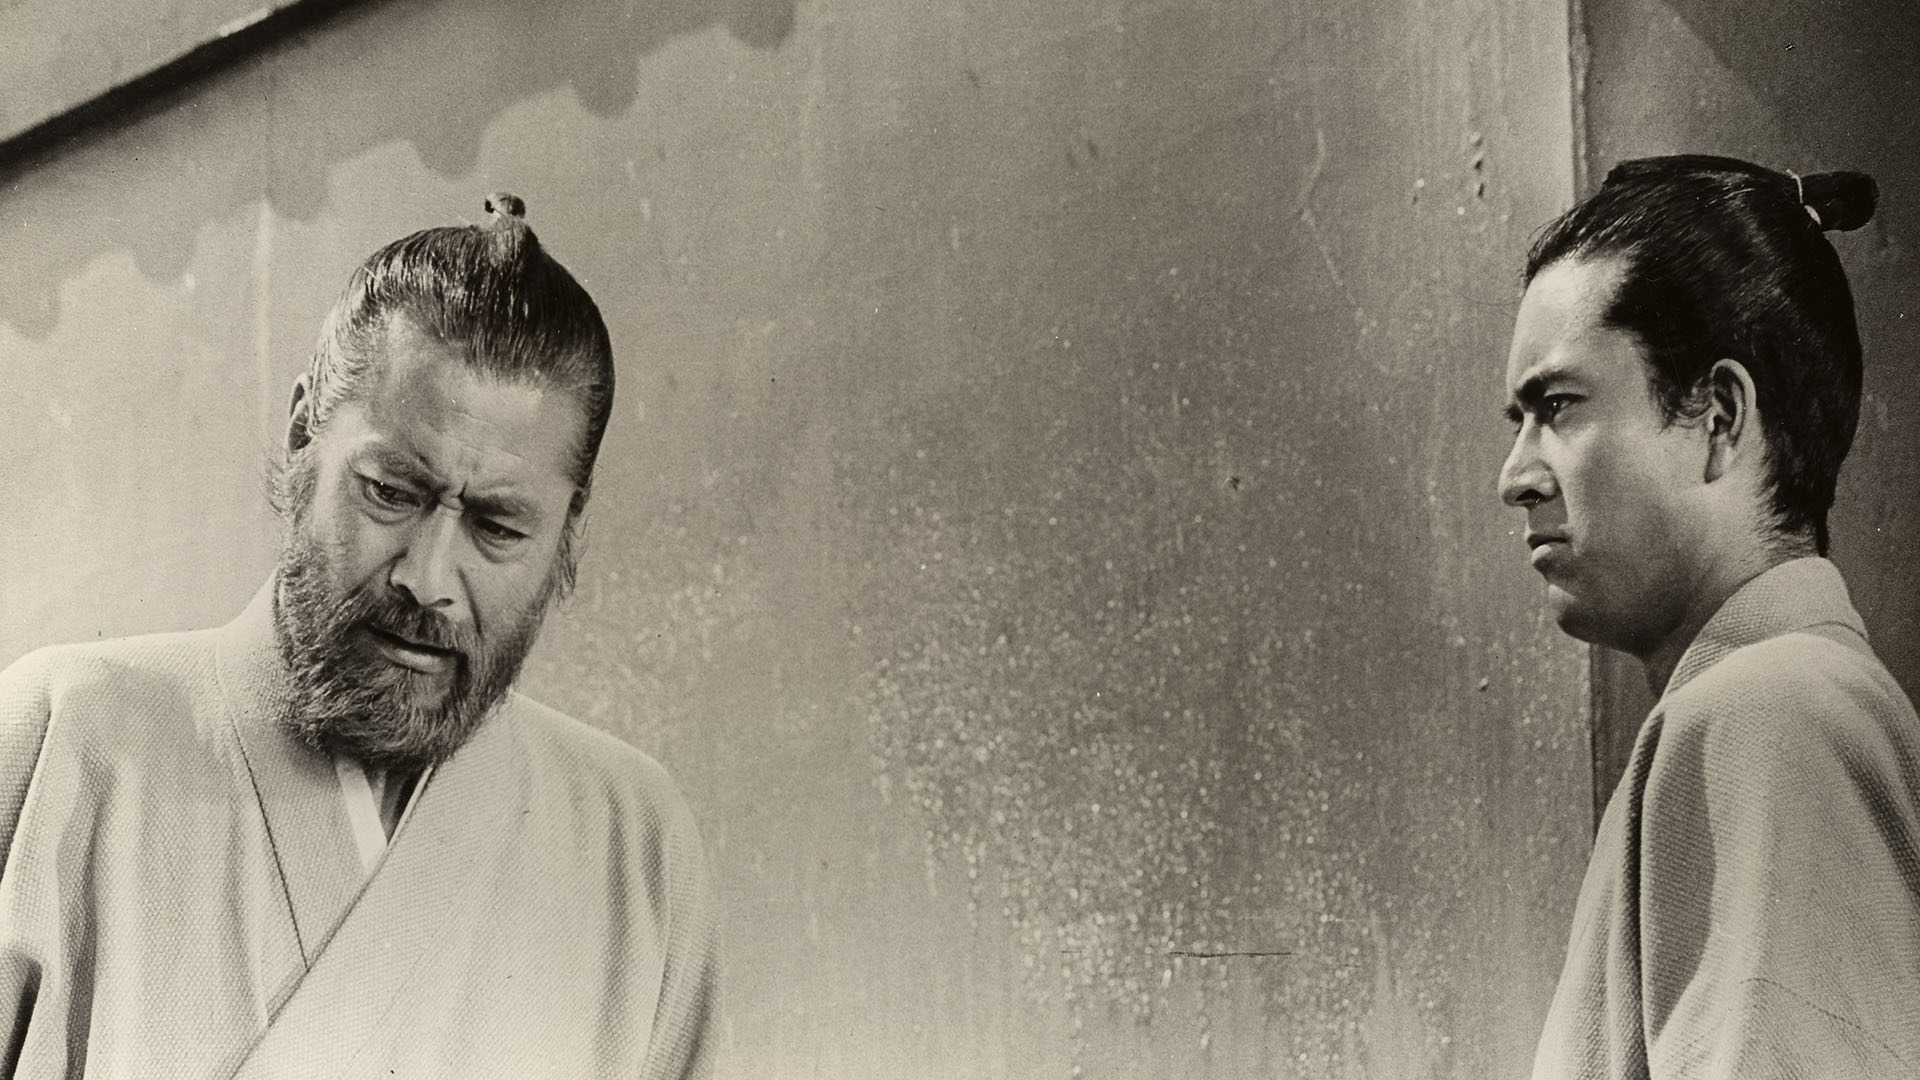 akira-kurosawa-toshiro-mifune-red-beard-desktop-1920x1080-hd-1920×1080-wallpaper-wp3802265